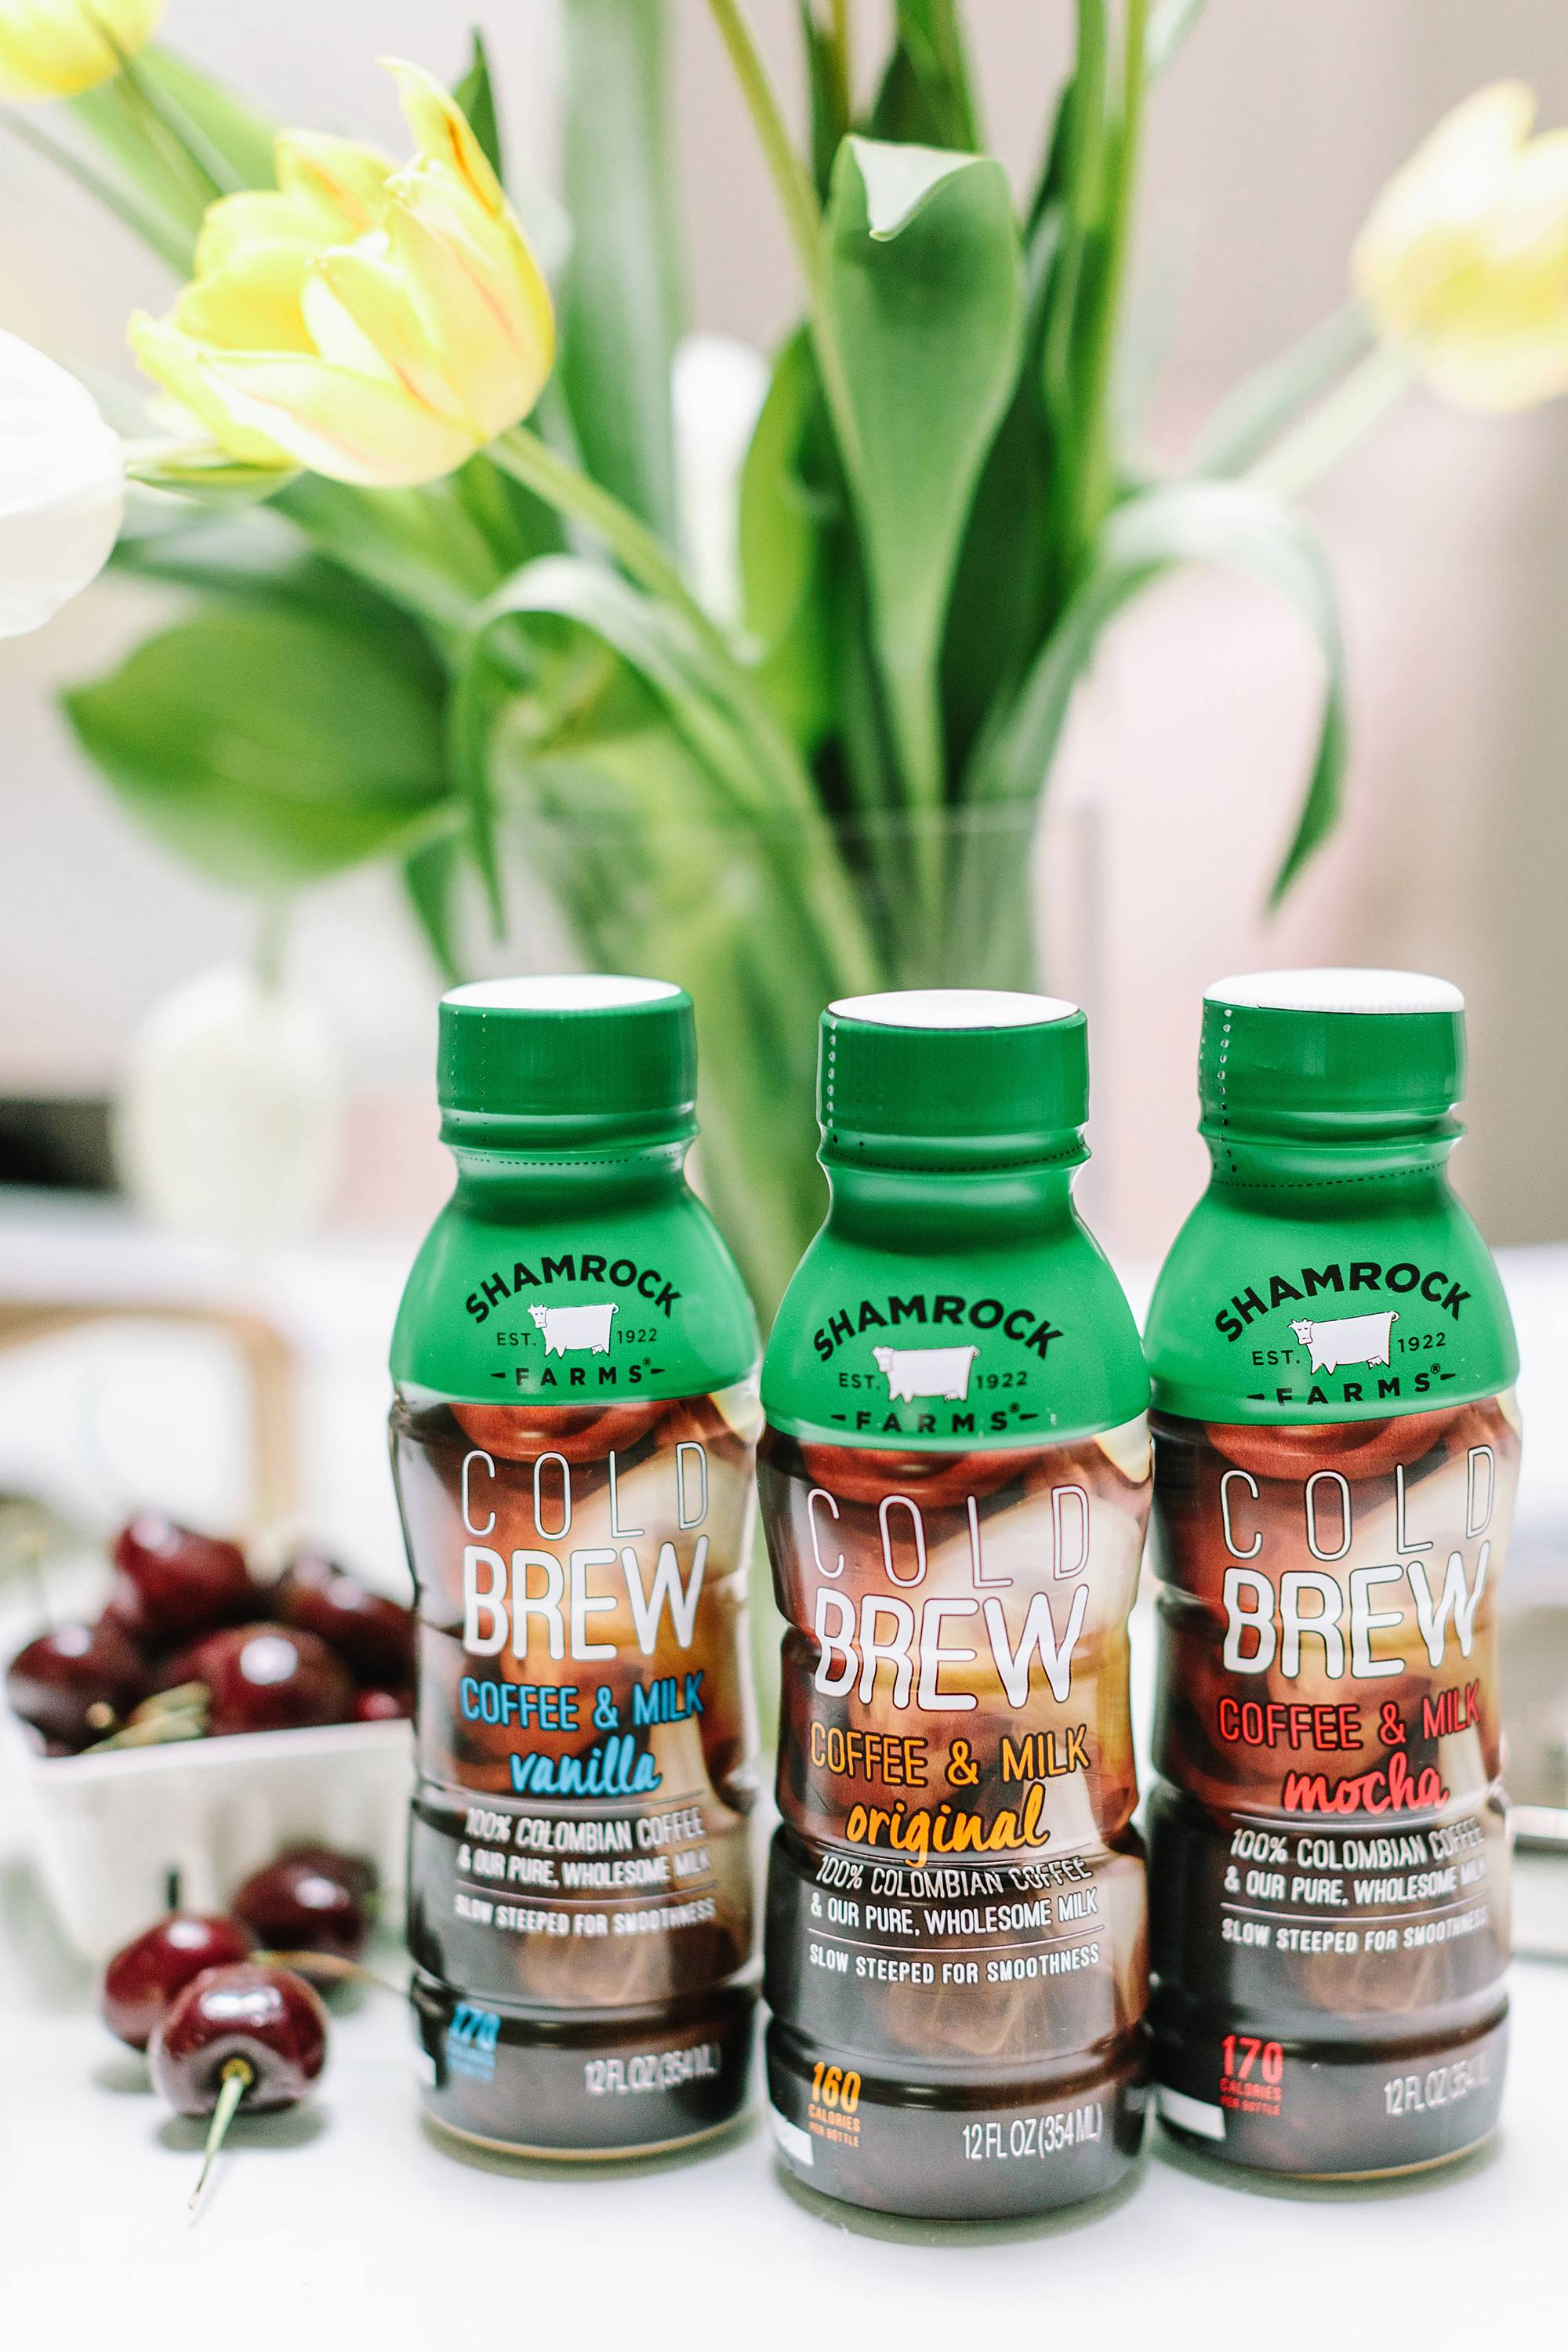 cold brew shamrock farms no hormones smooth ready to go in delicious flavors twice the caffeine as coffee